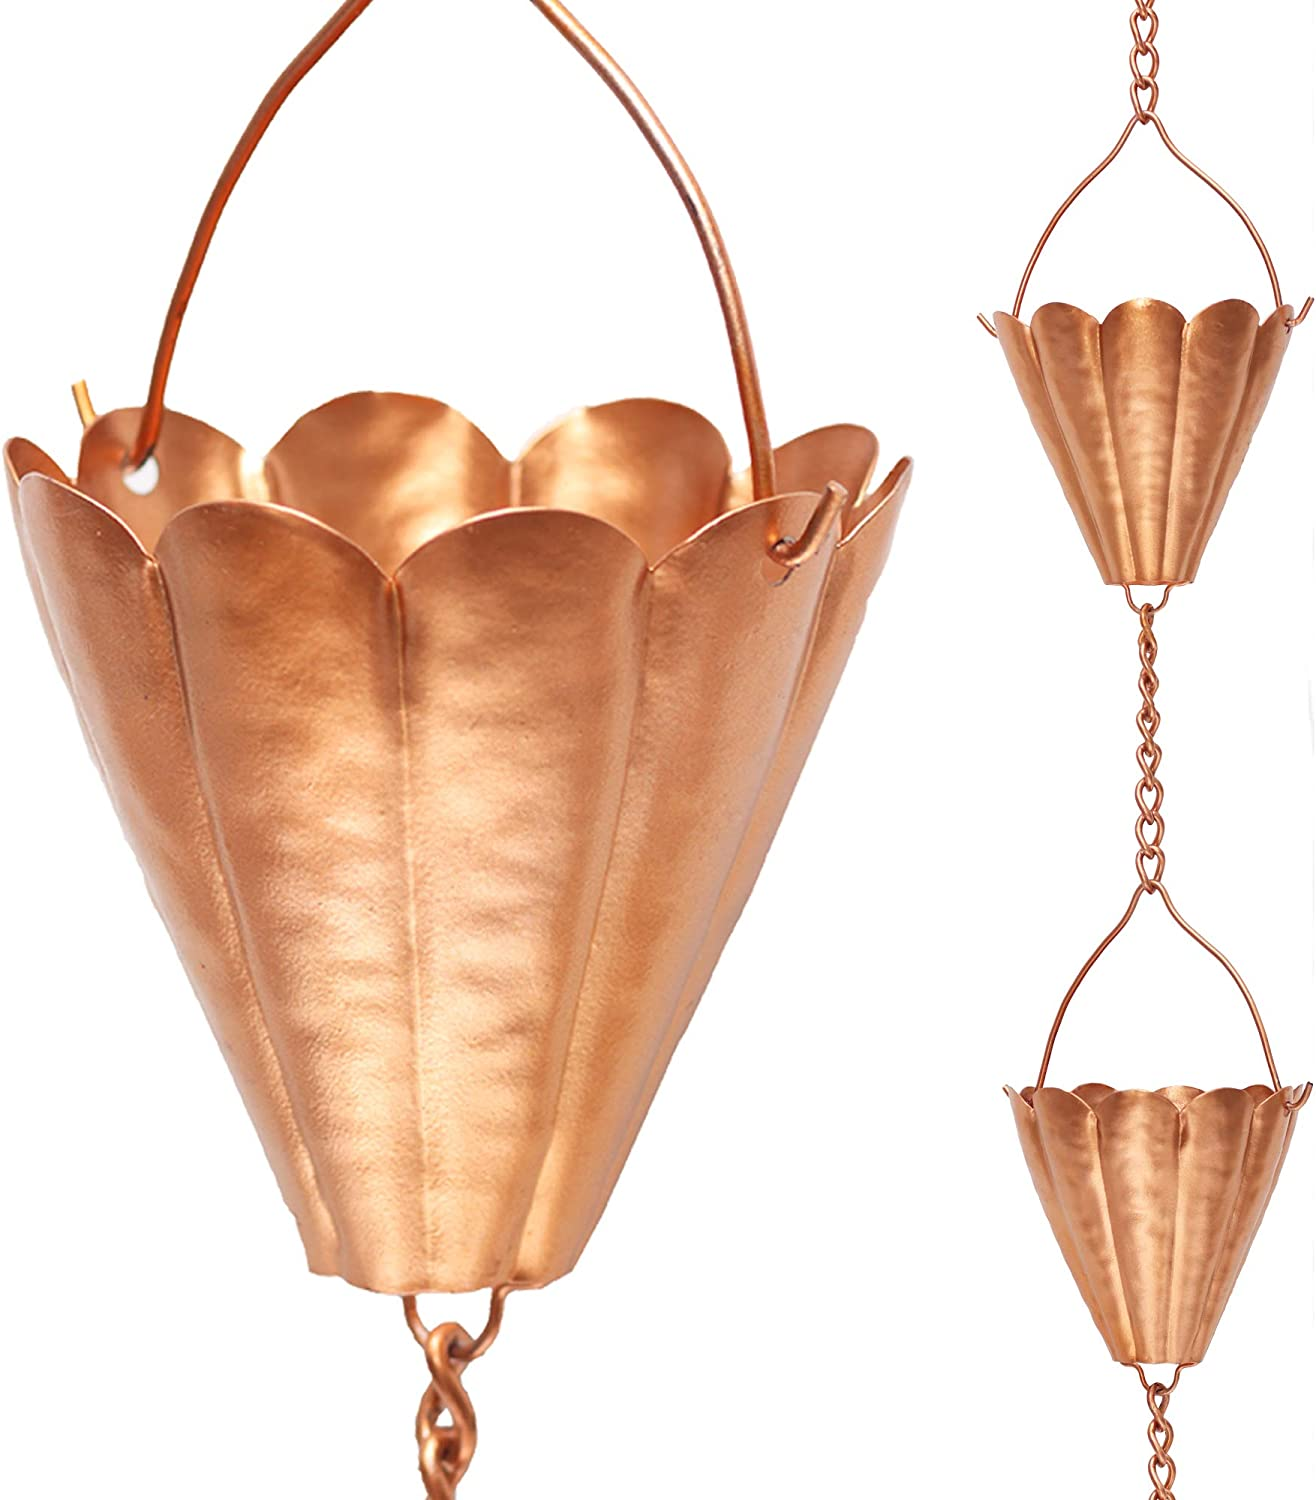 Arca Rain Chain - Copper Colored Iron Rain Chain for Gutters - 8-1/2- Feet Length Modern Gold Rain Catcher for Downspout of Roof Corner - DIY Downspout with Unique and Decorative Garden Accessory